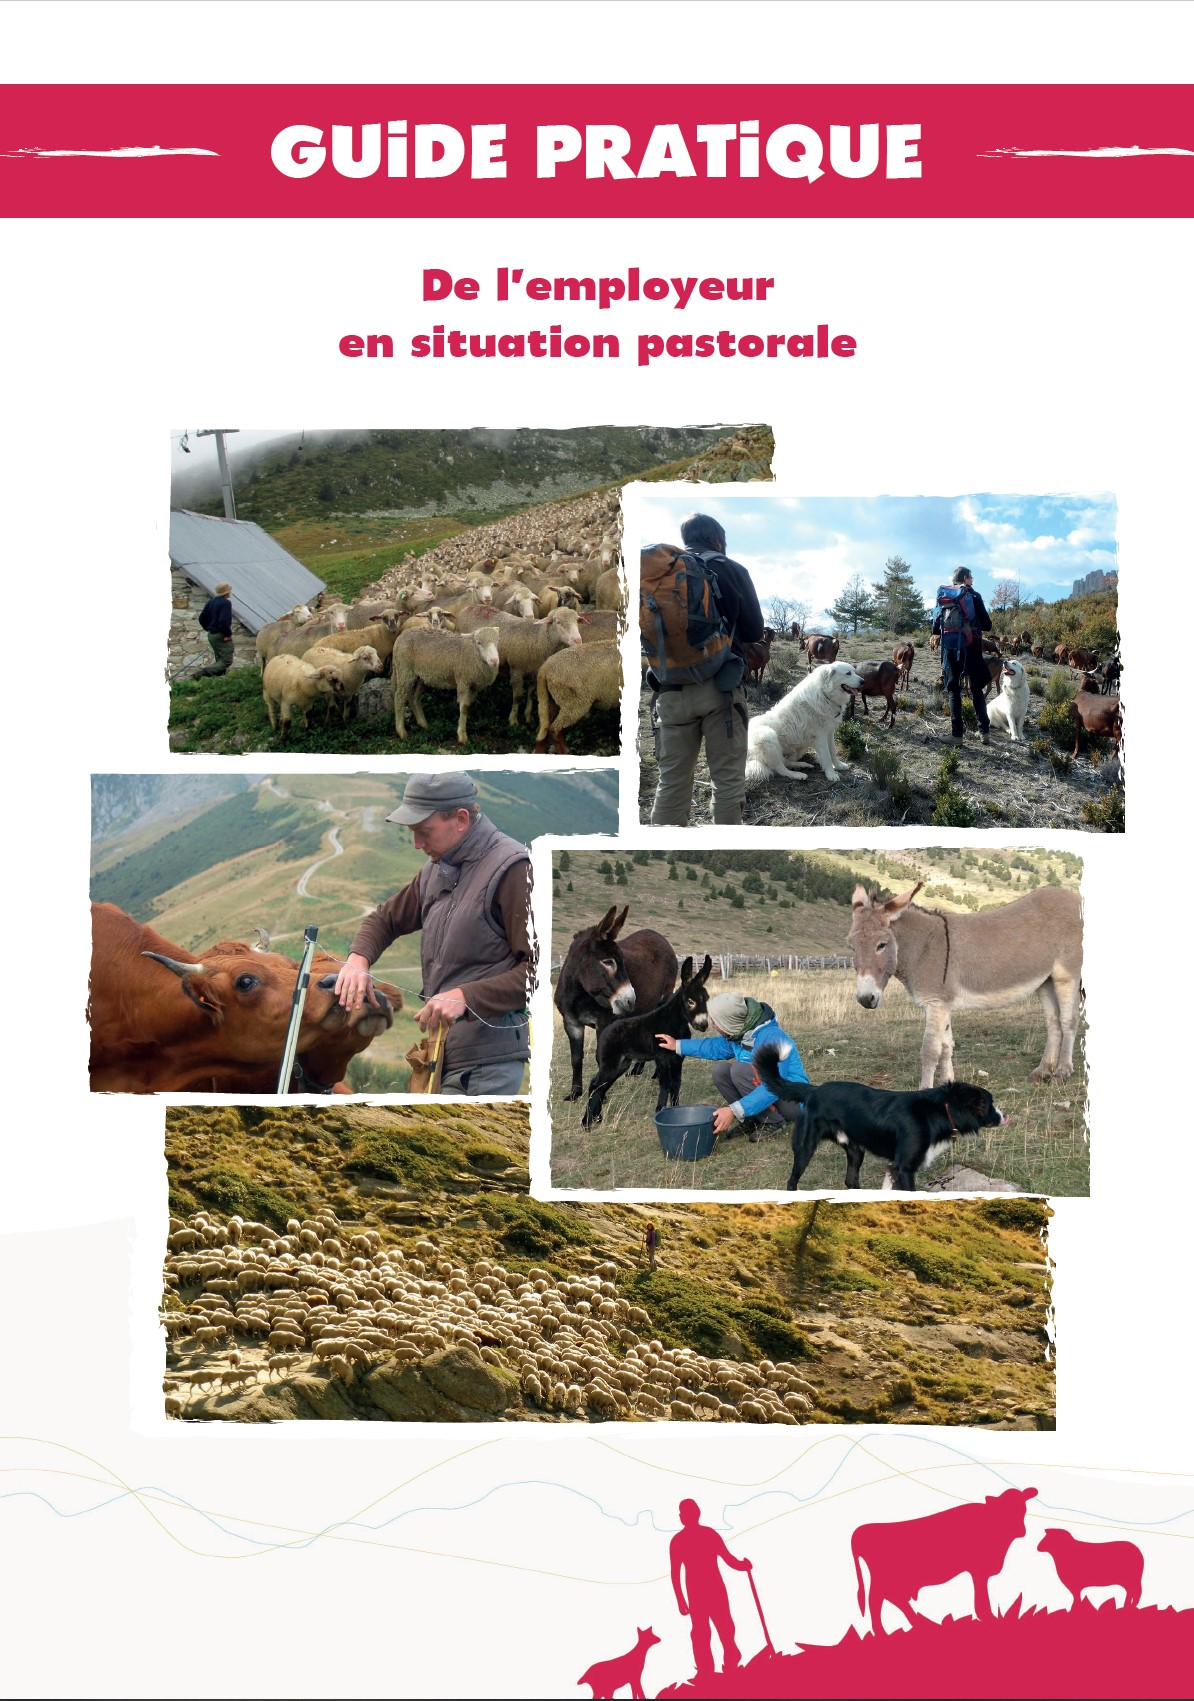 Guide pratique de l'employeur en situation pastorale p1